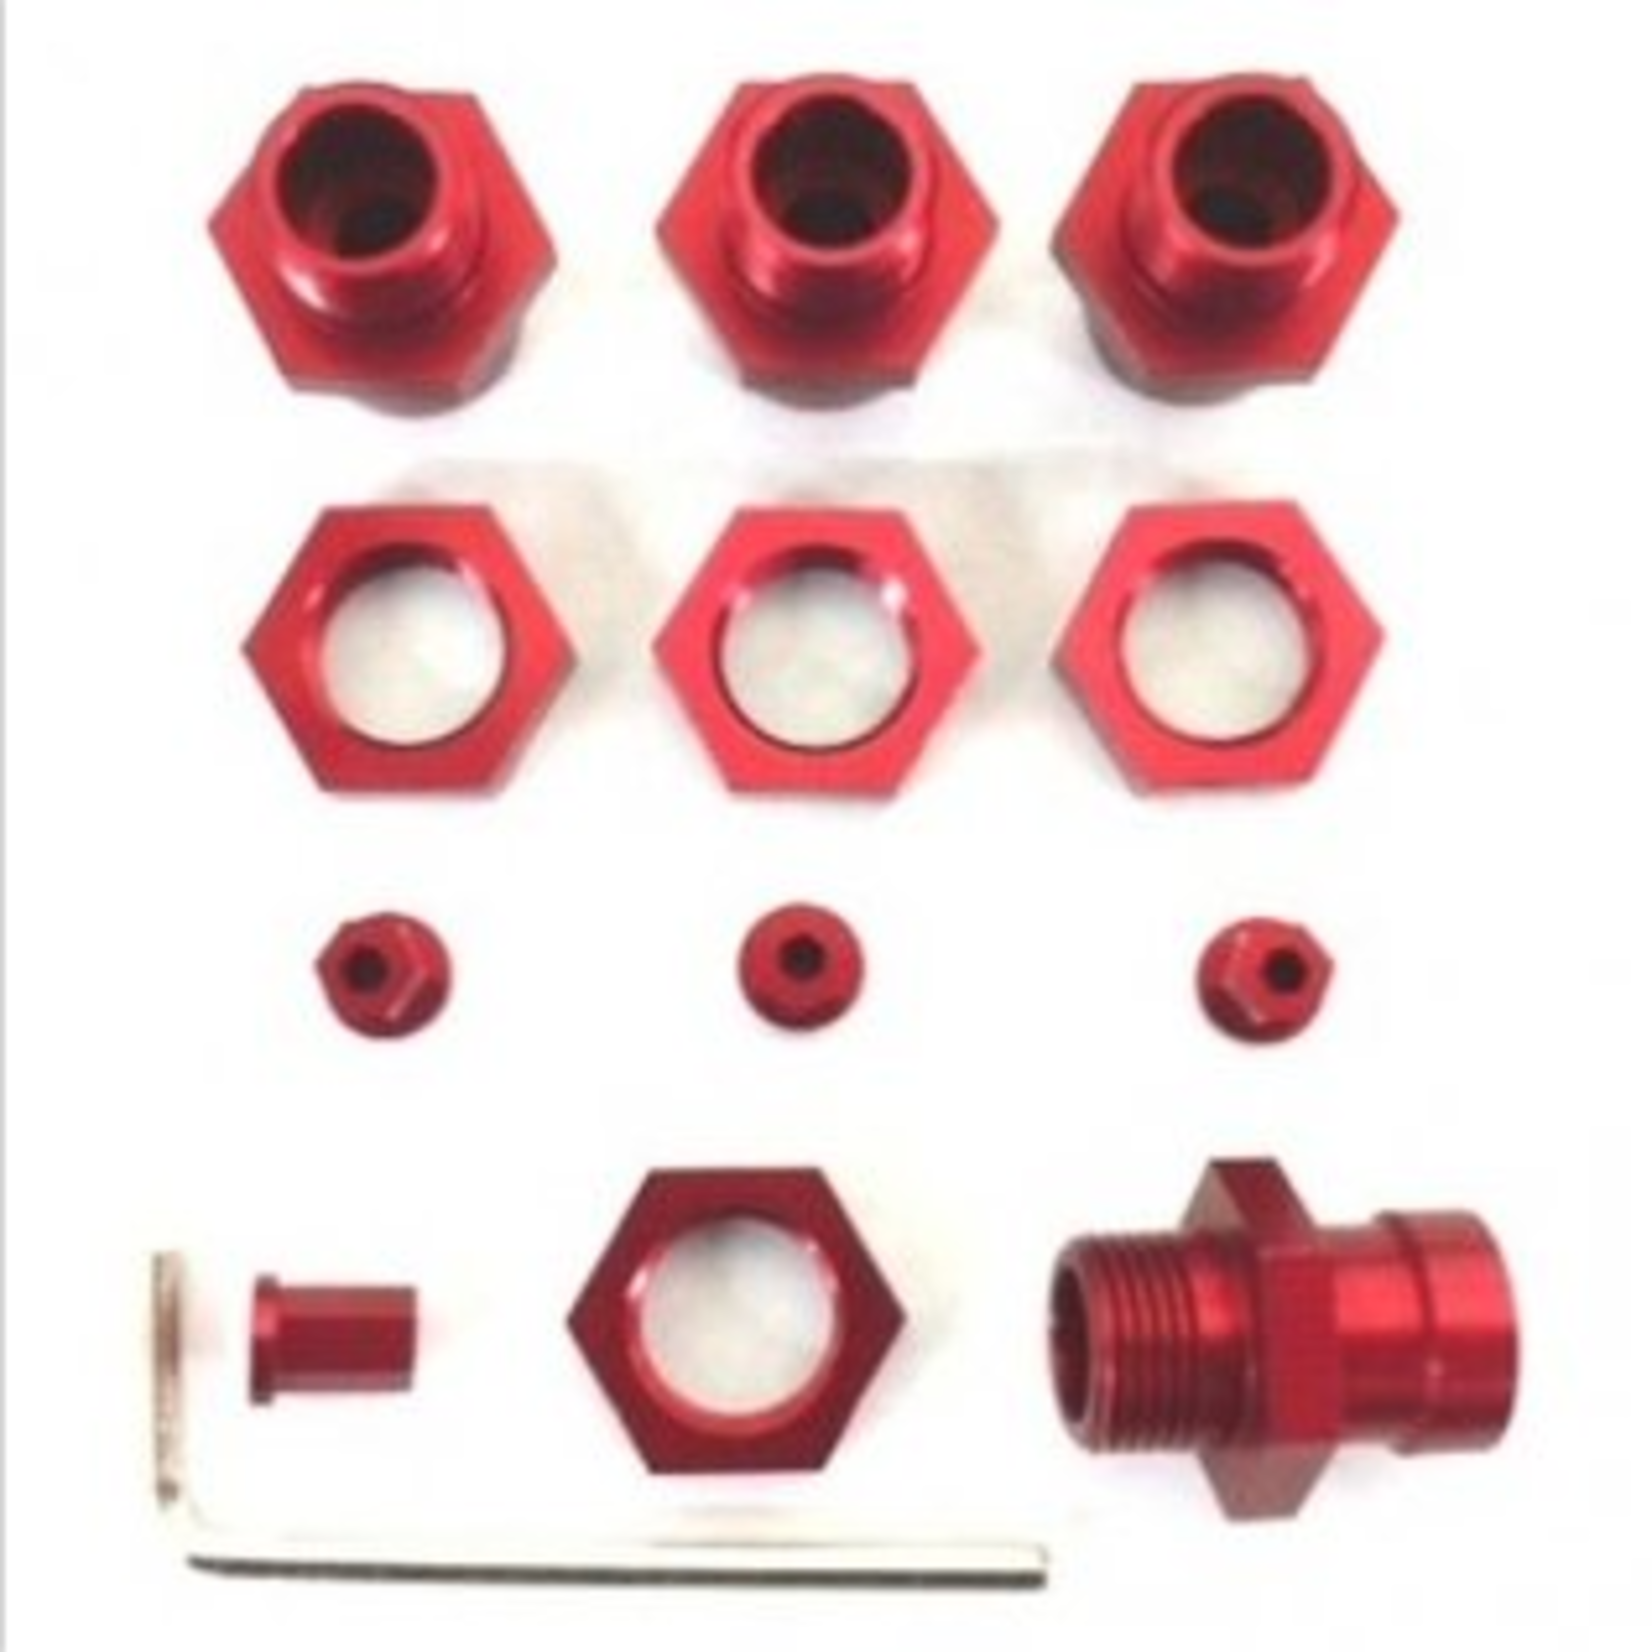 ST Racing Concepts SPTST1654-17R ST Racing Concepts CNC Machined Aluminum 17mm hex adatpers for Slash 4x4/Stampede 4x4/Rally (Red)